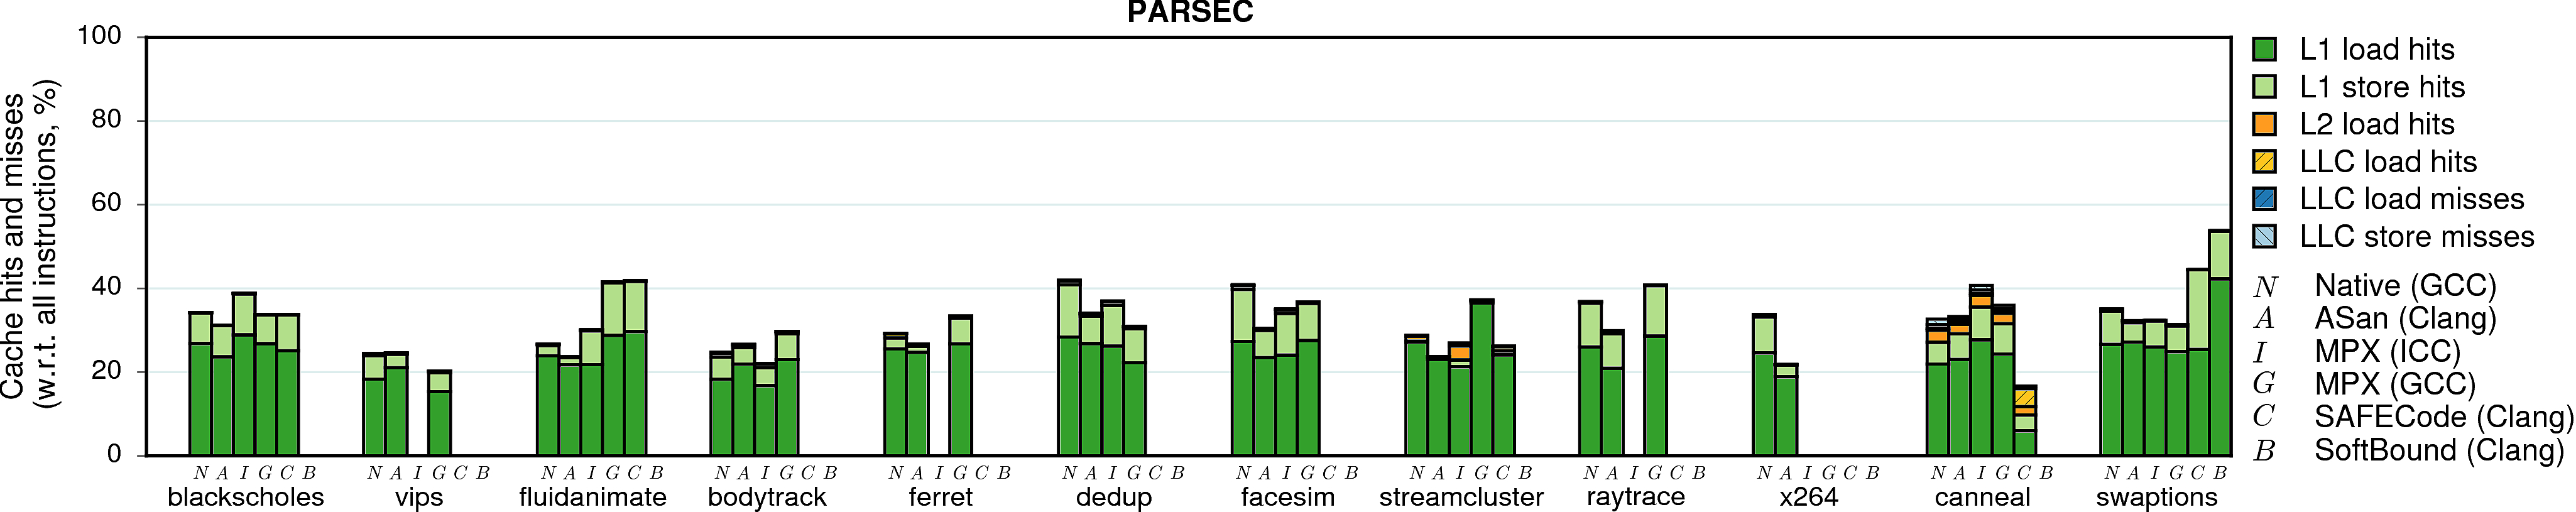 Cache behavior of PARSEC